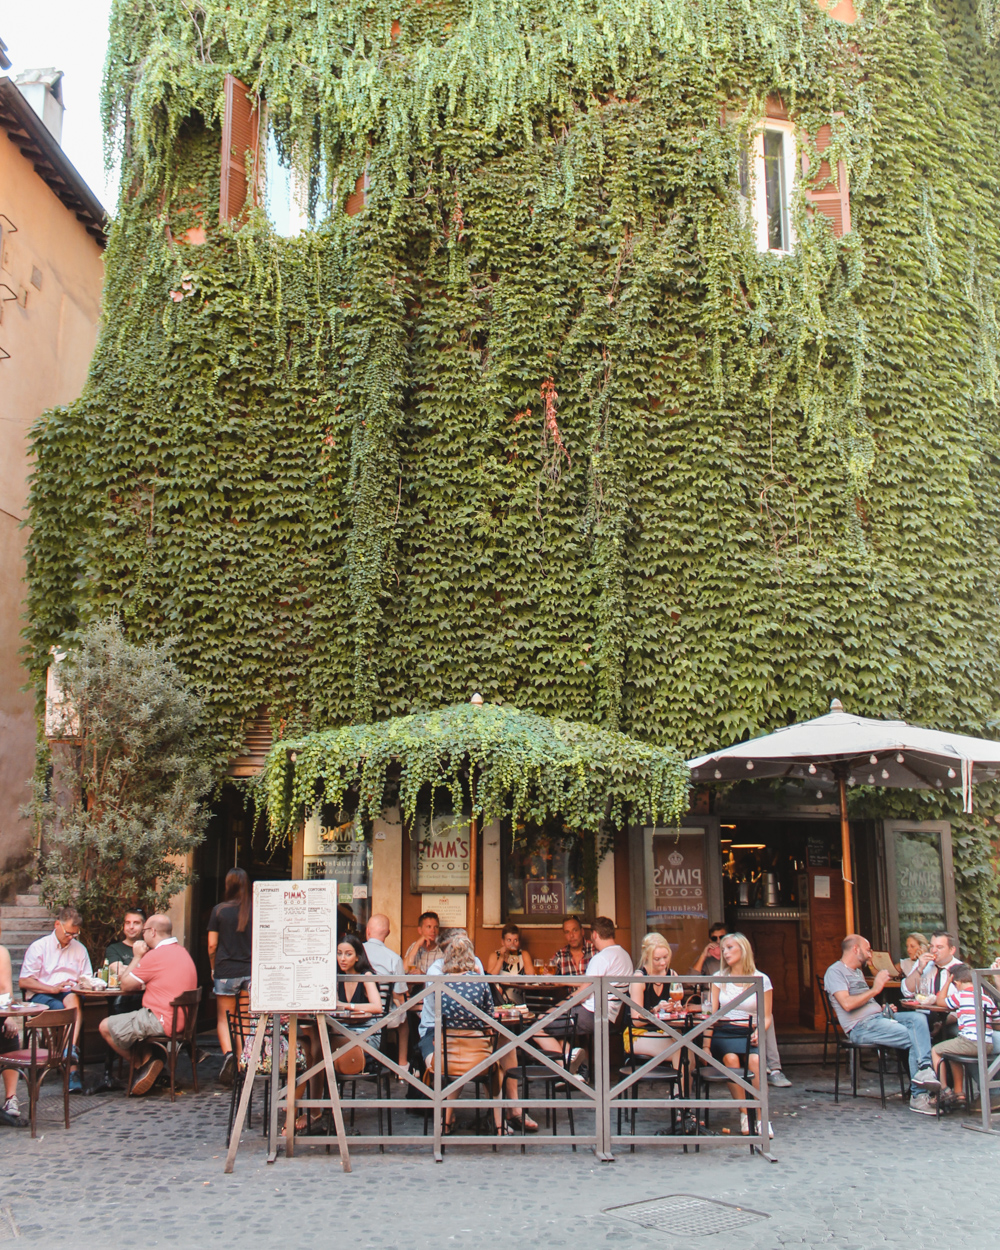 Where to eat and drink in Rome | Trastevere